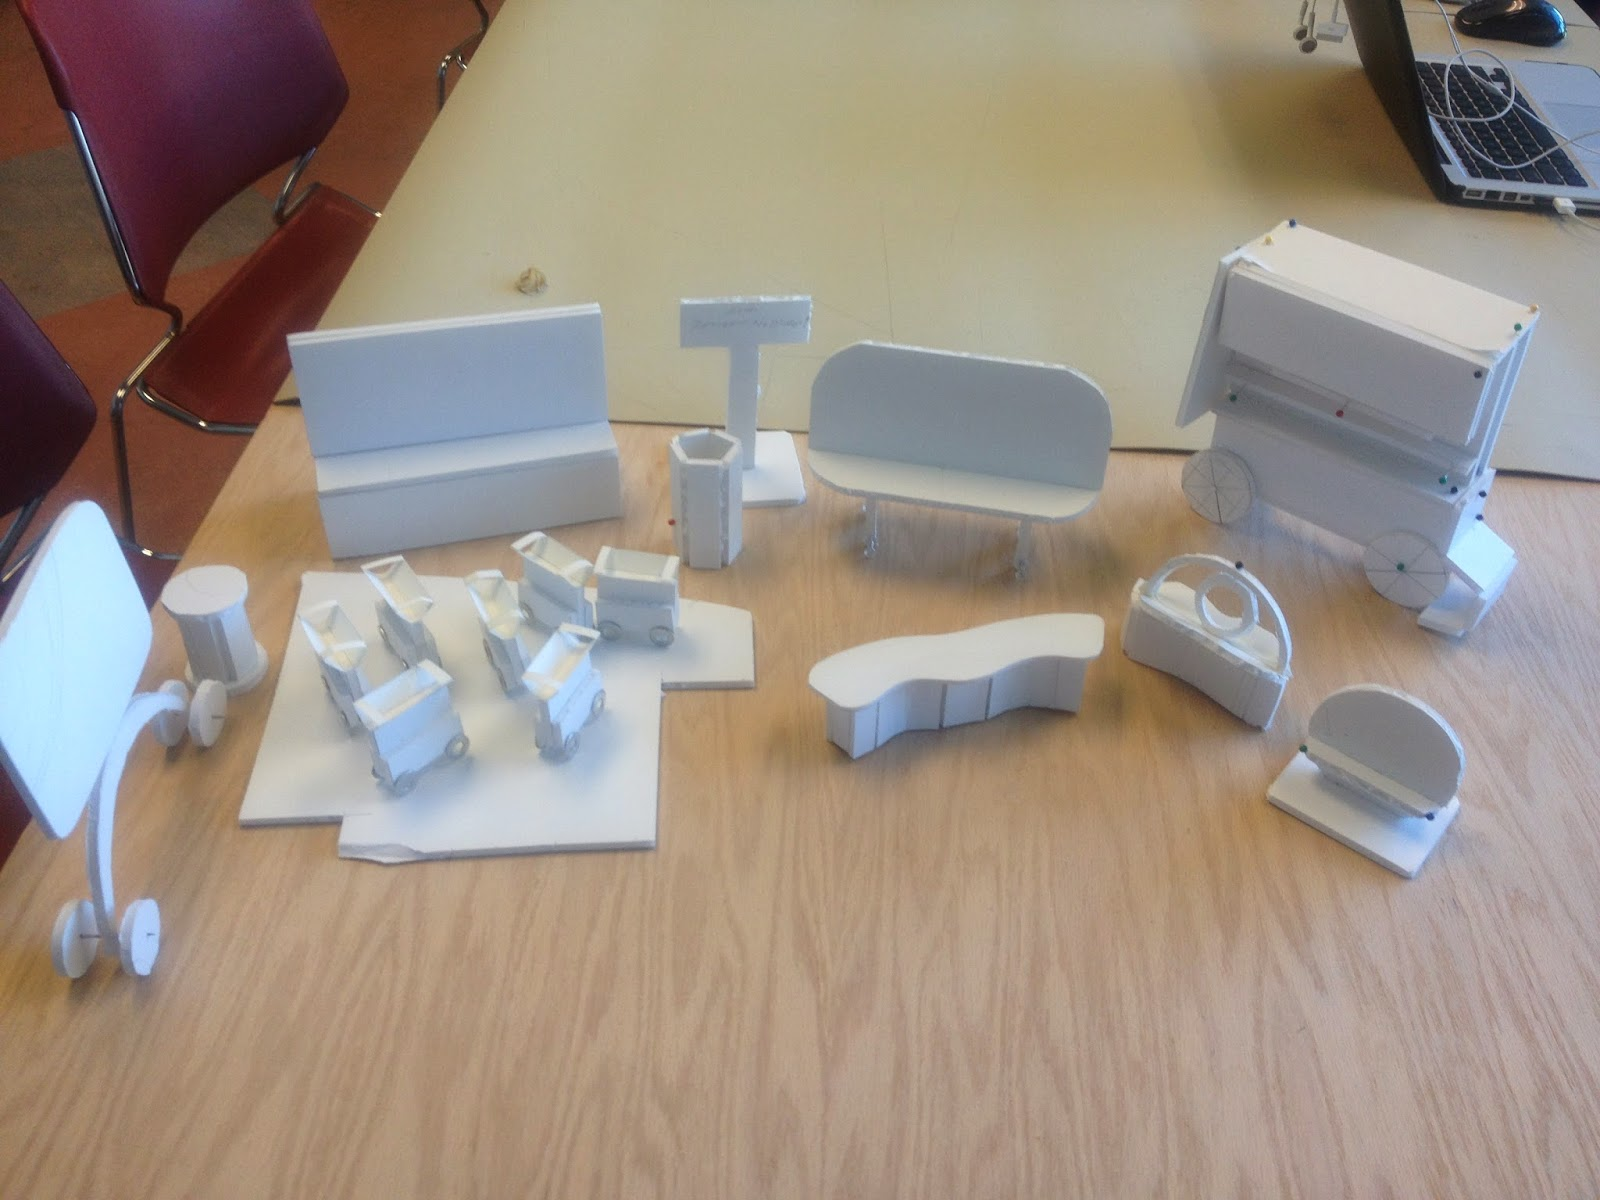 A frontal view from eye level of a group of foam core model mockups on a table.